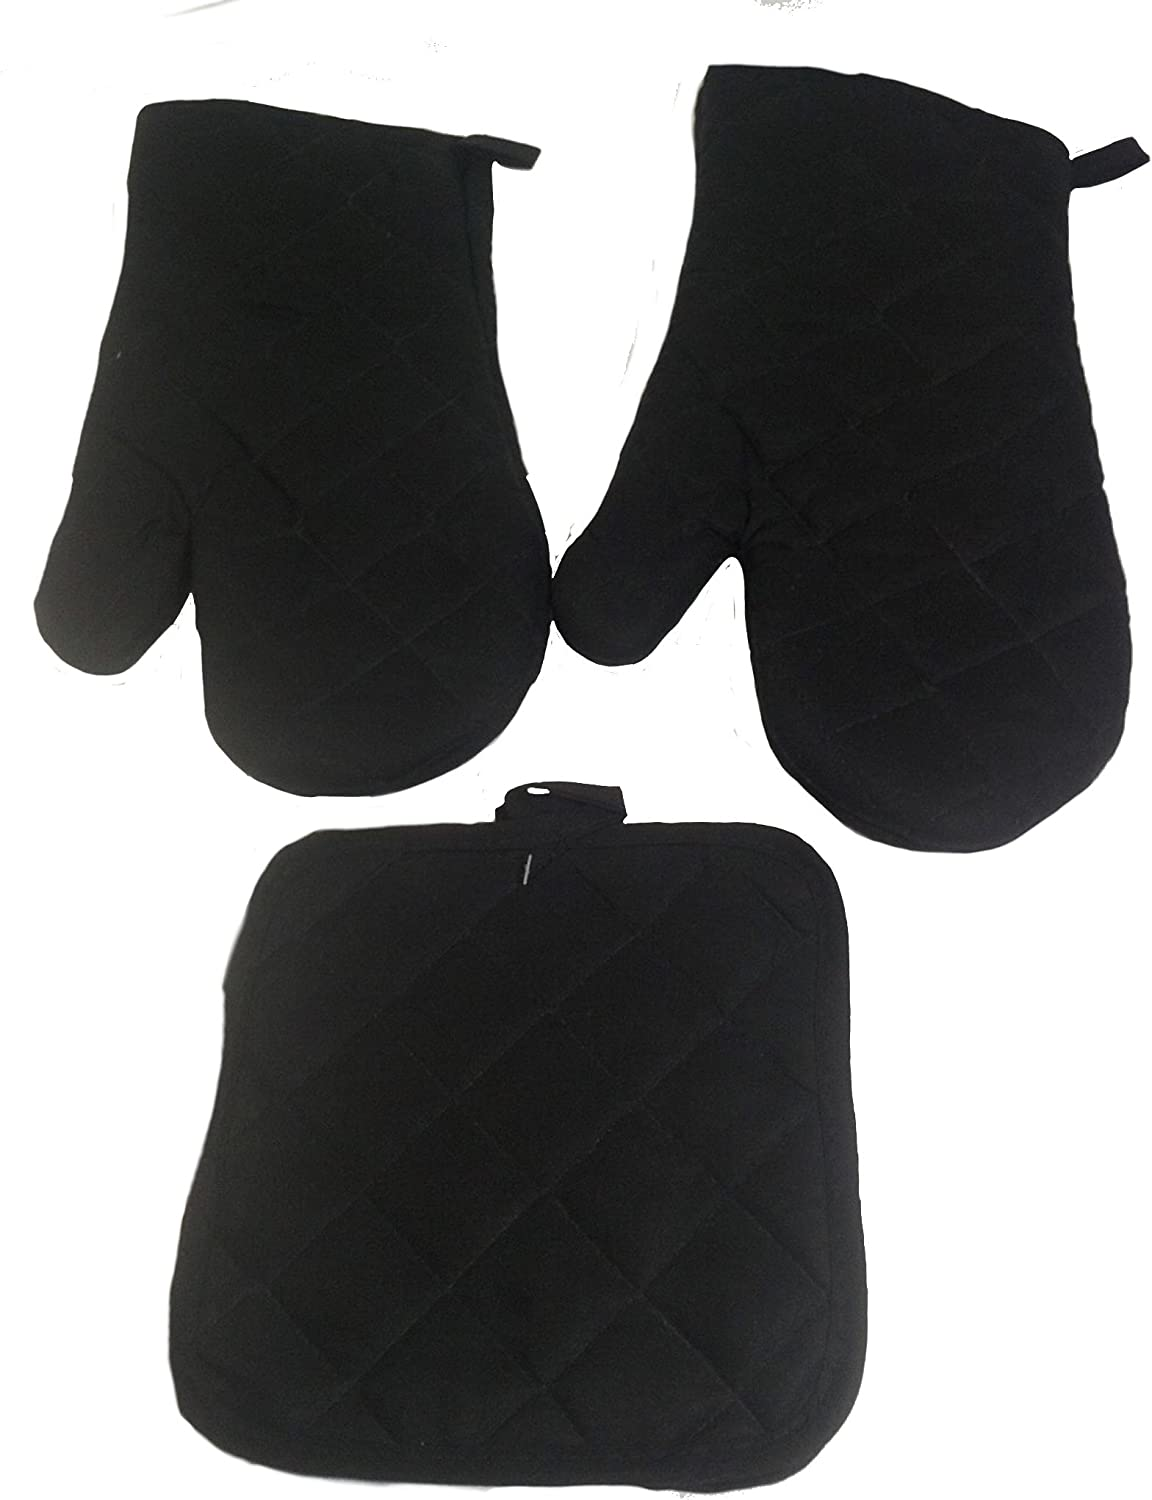 Kitchen Oven Mitt Pot Holder Set Kitchen Linens Oven Mitt Pot Holder Pack (Black)